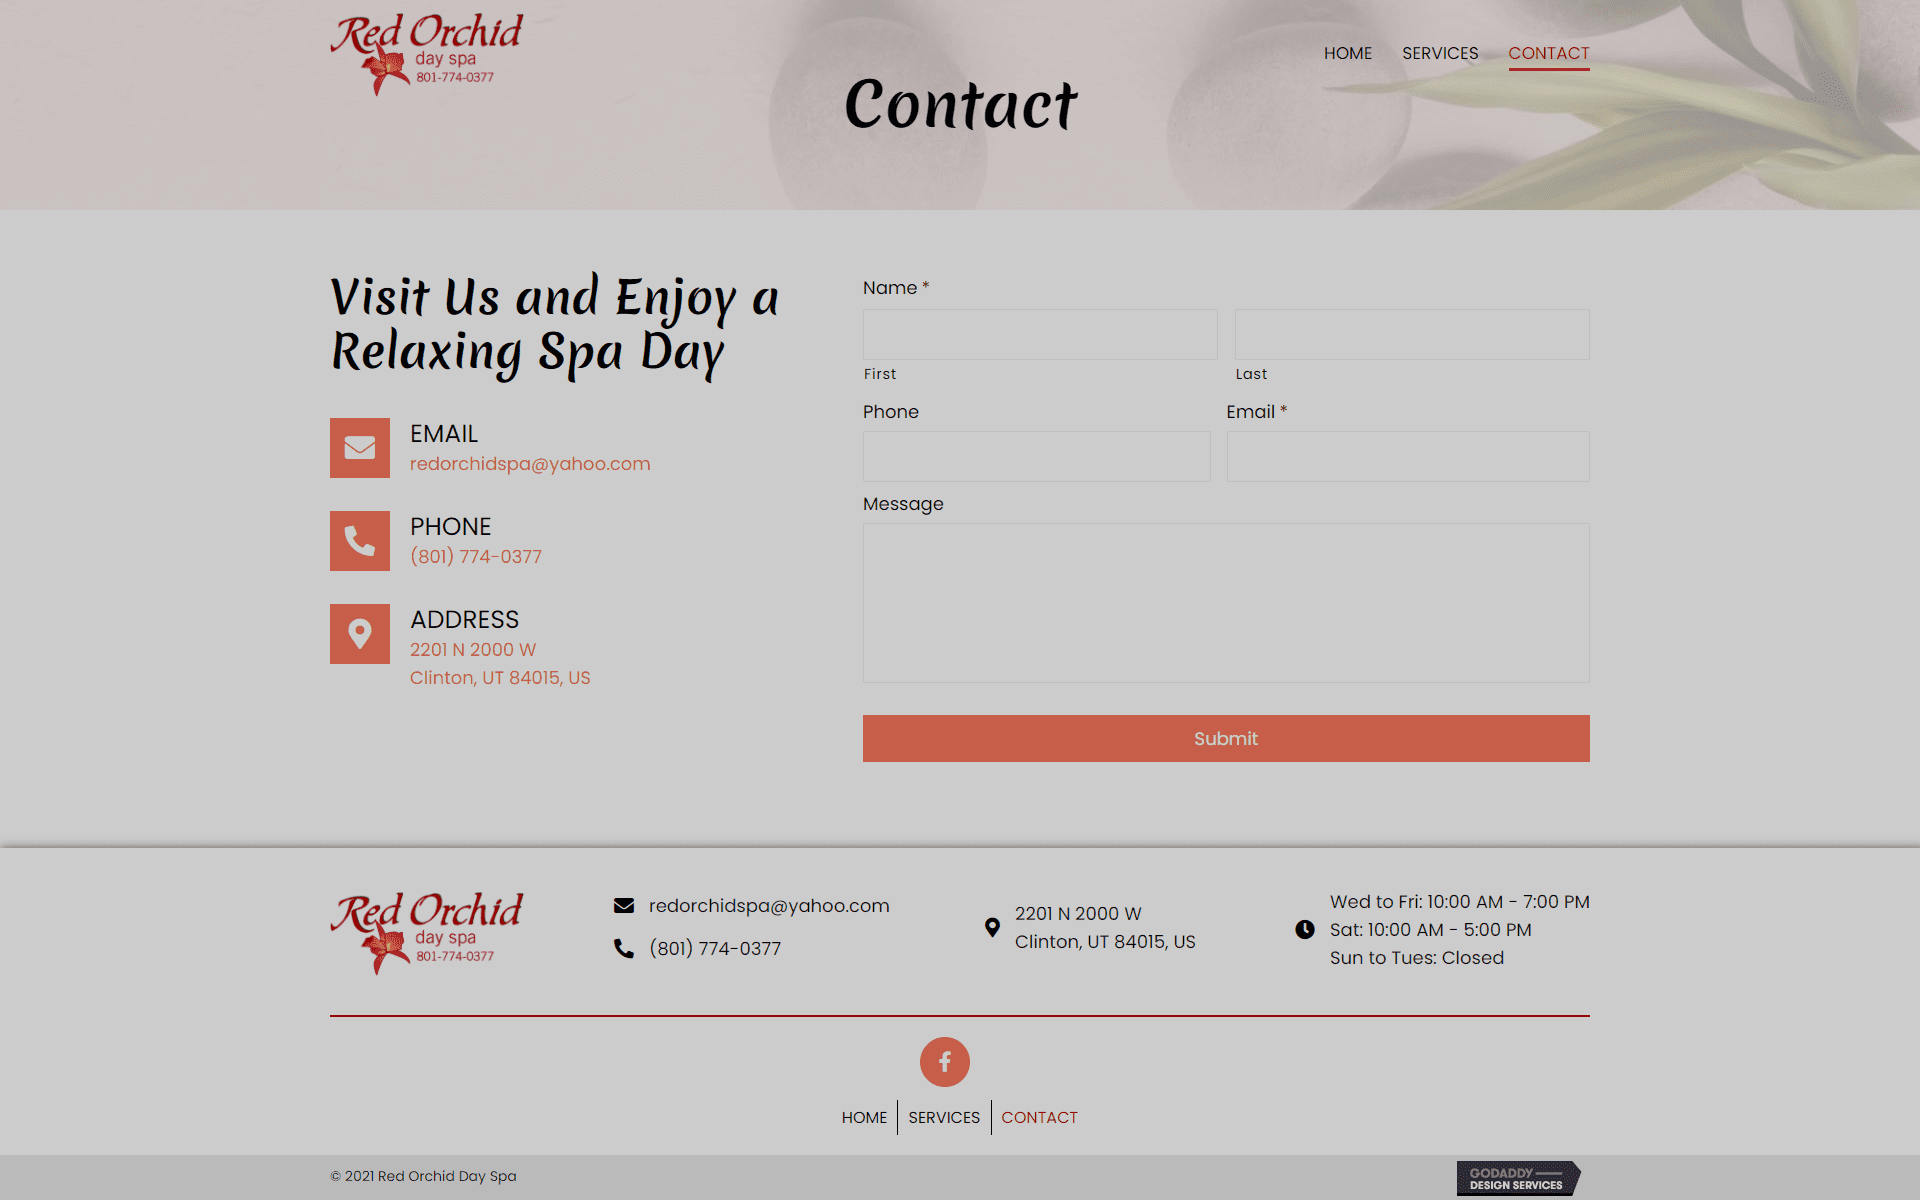 Red Orchid Day Spa Contact